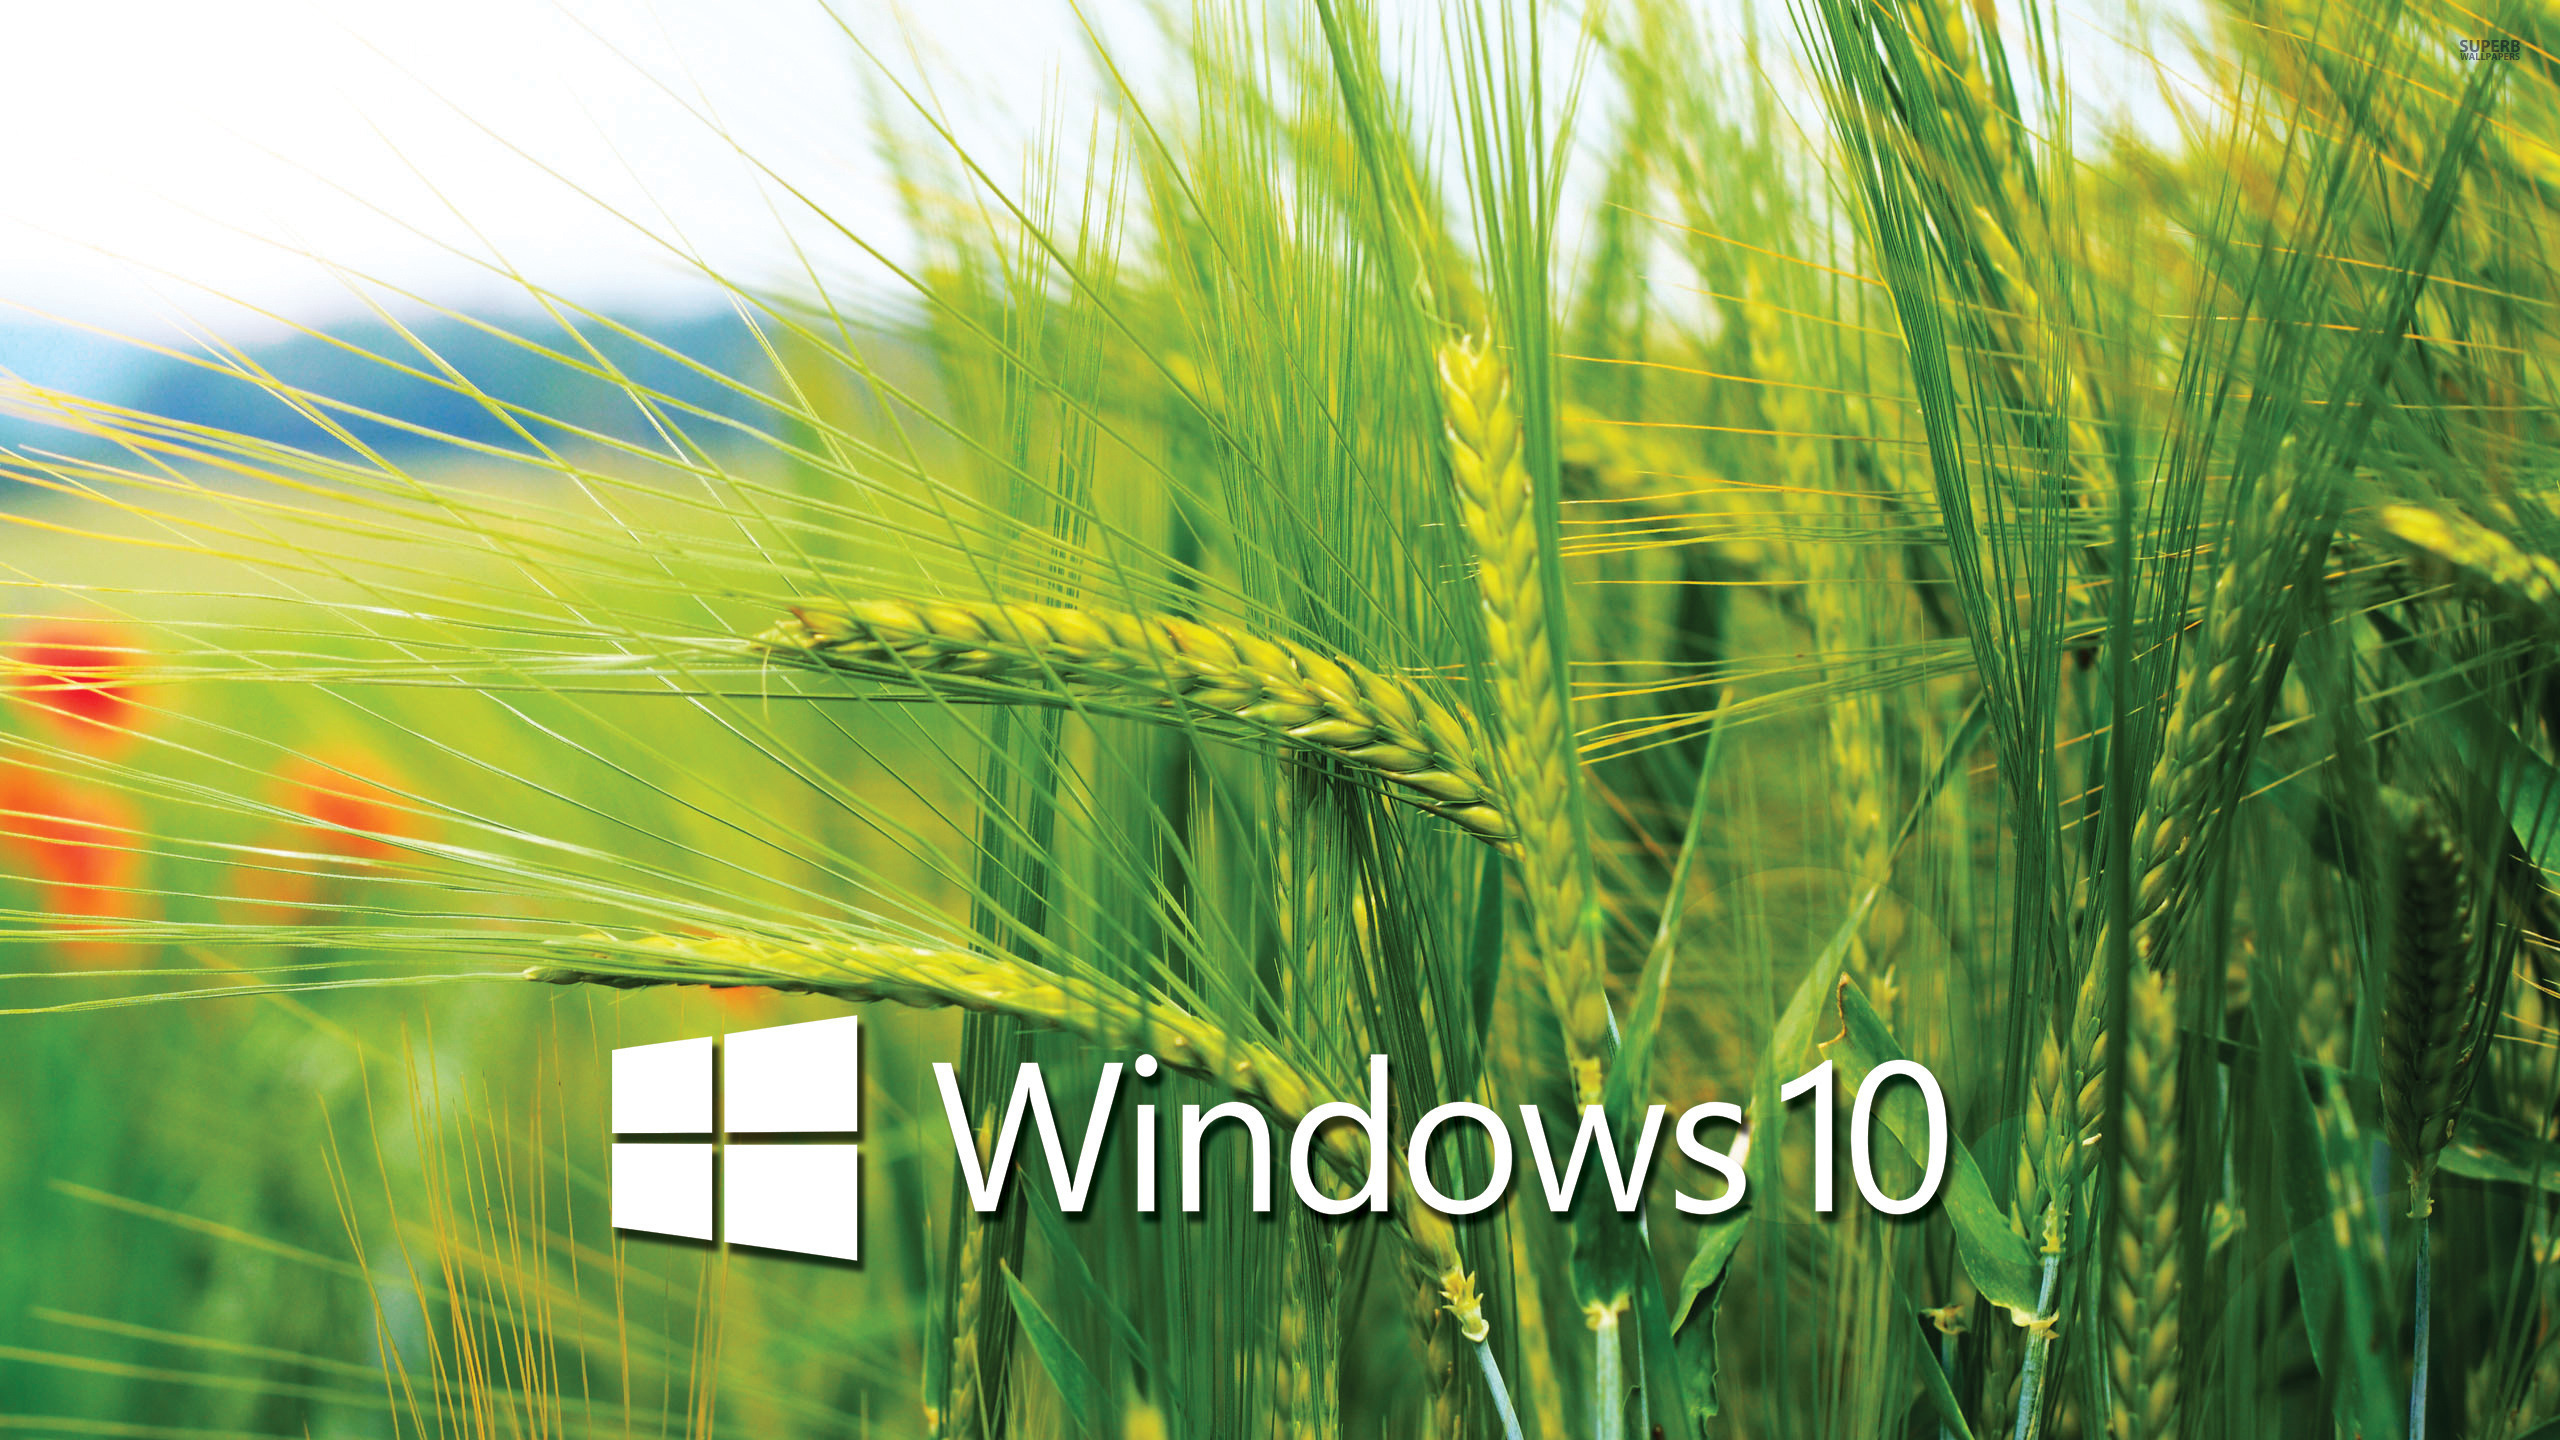 Windows 10 Wallpapers 29